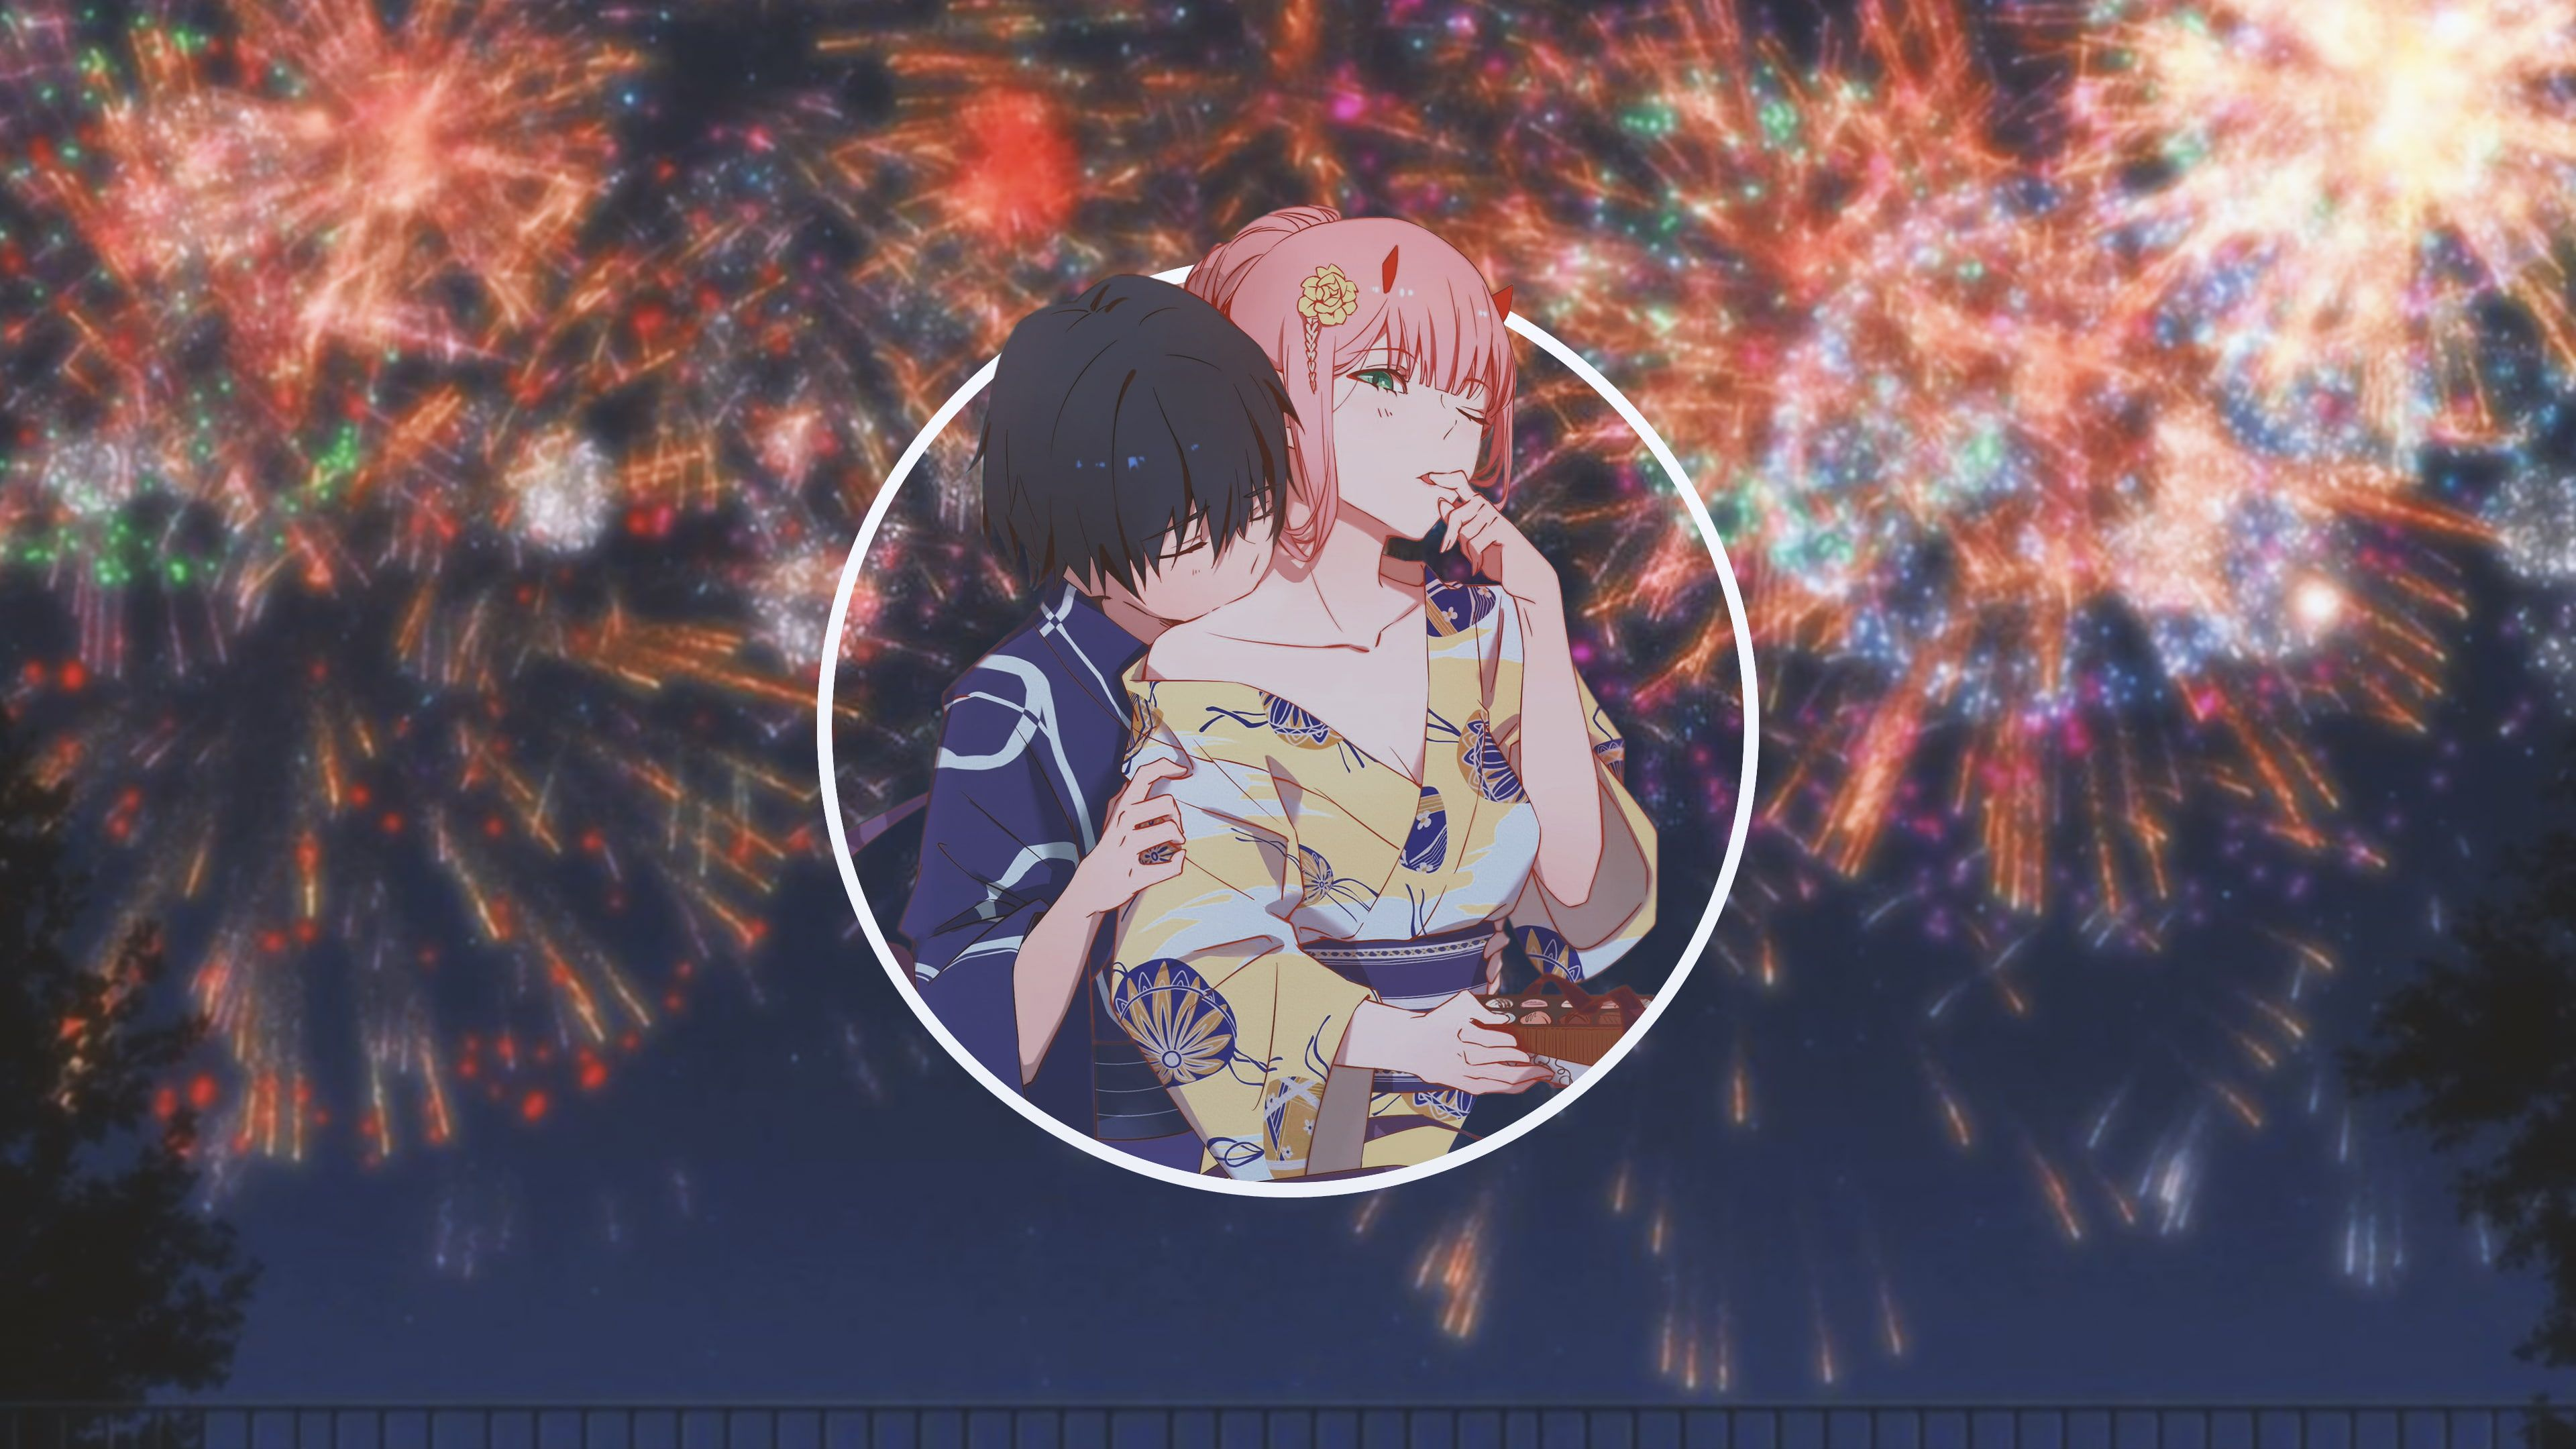 Anime Anime Girls Picture In Picture Darling In The Franxx Zero Two Darling In The Franxx Code 016 Hiro Yukata Hd Anime Wallpapers Anime Wallpaper Anime